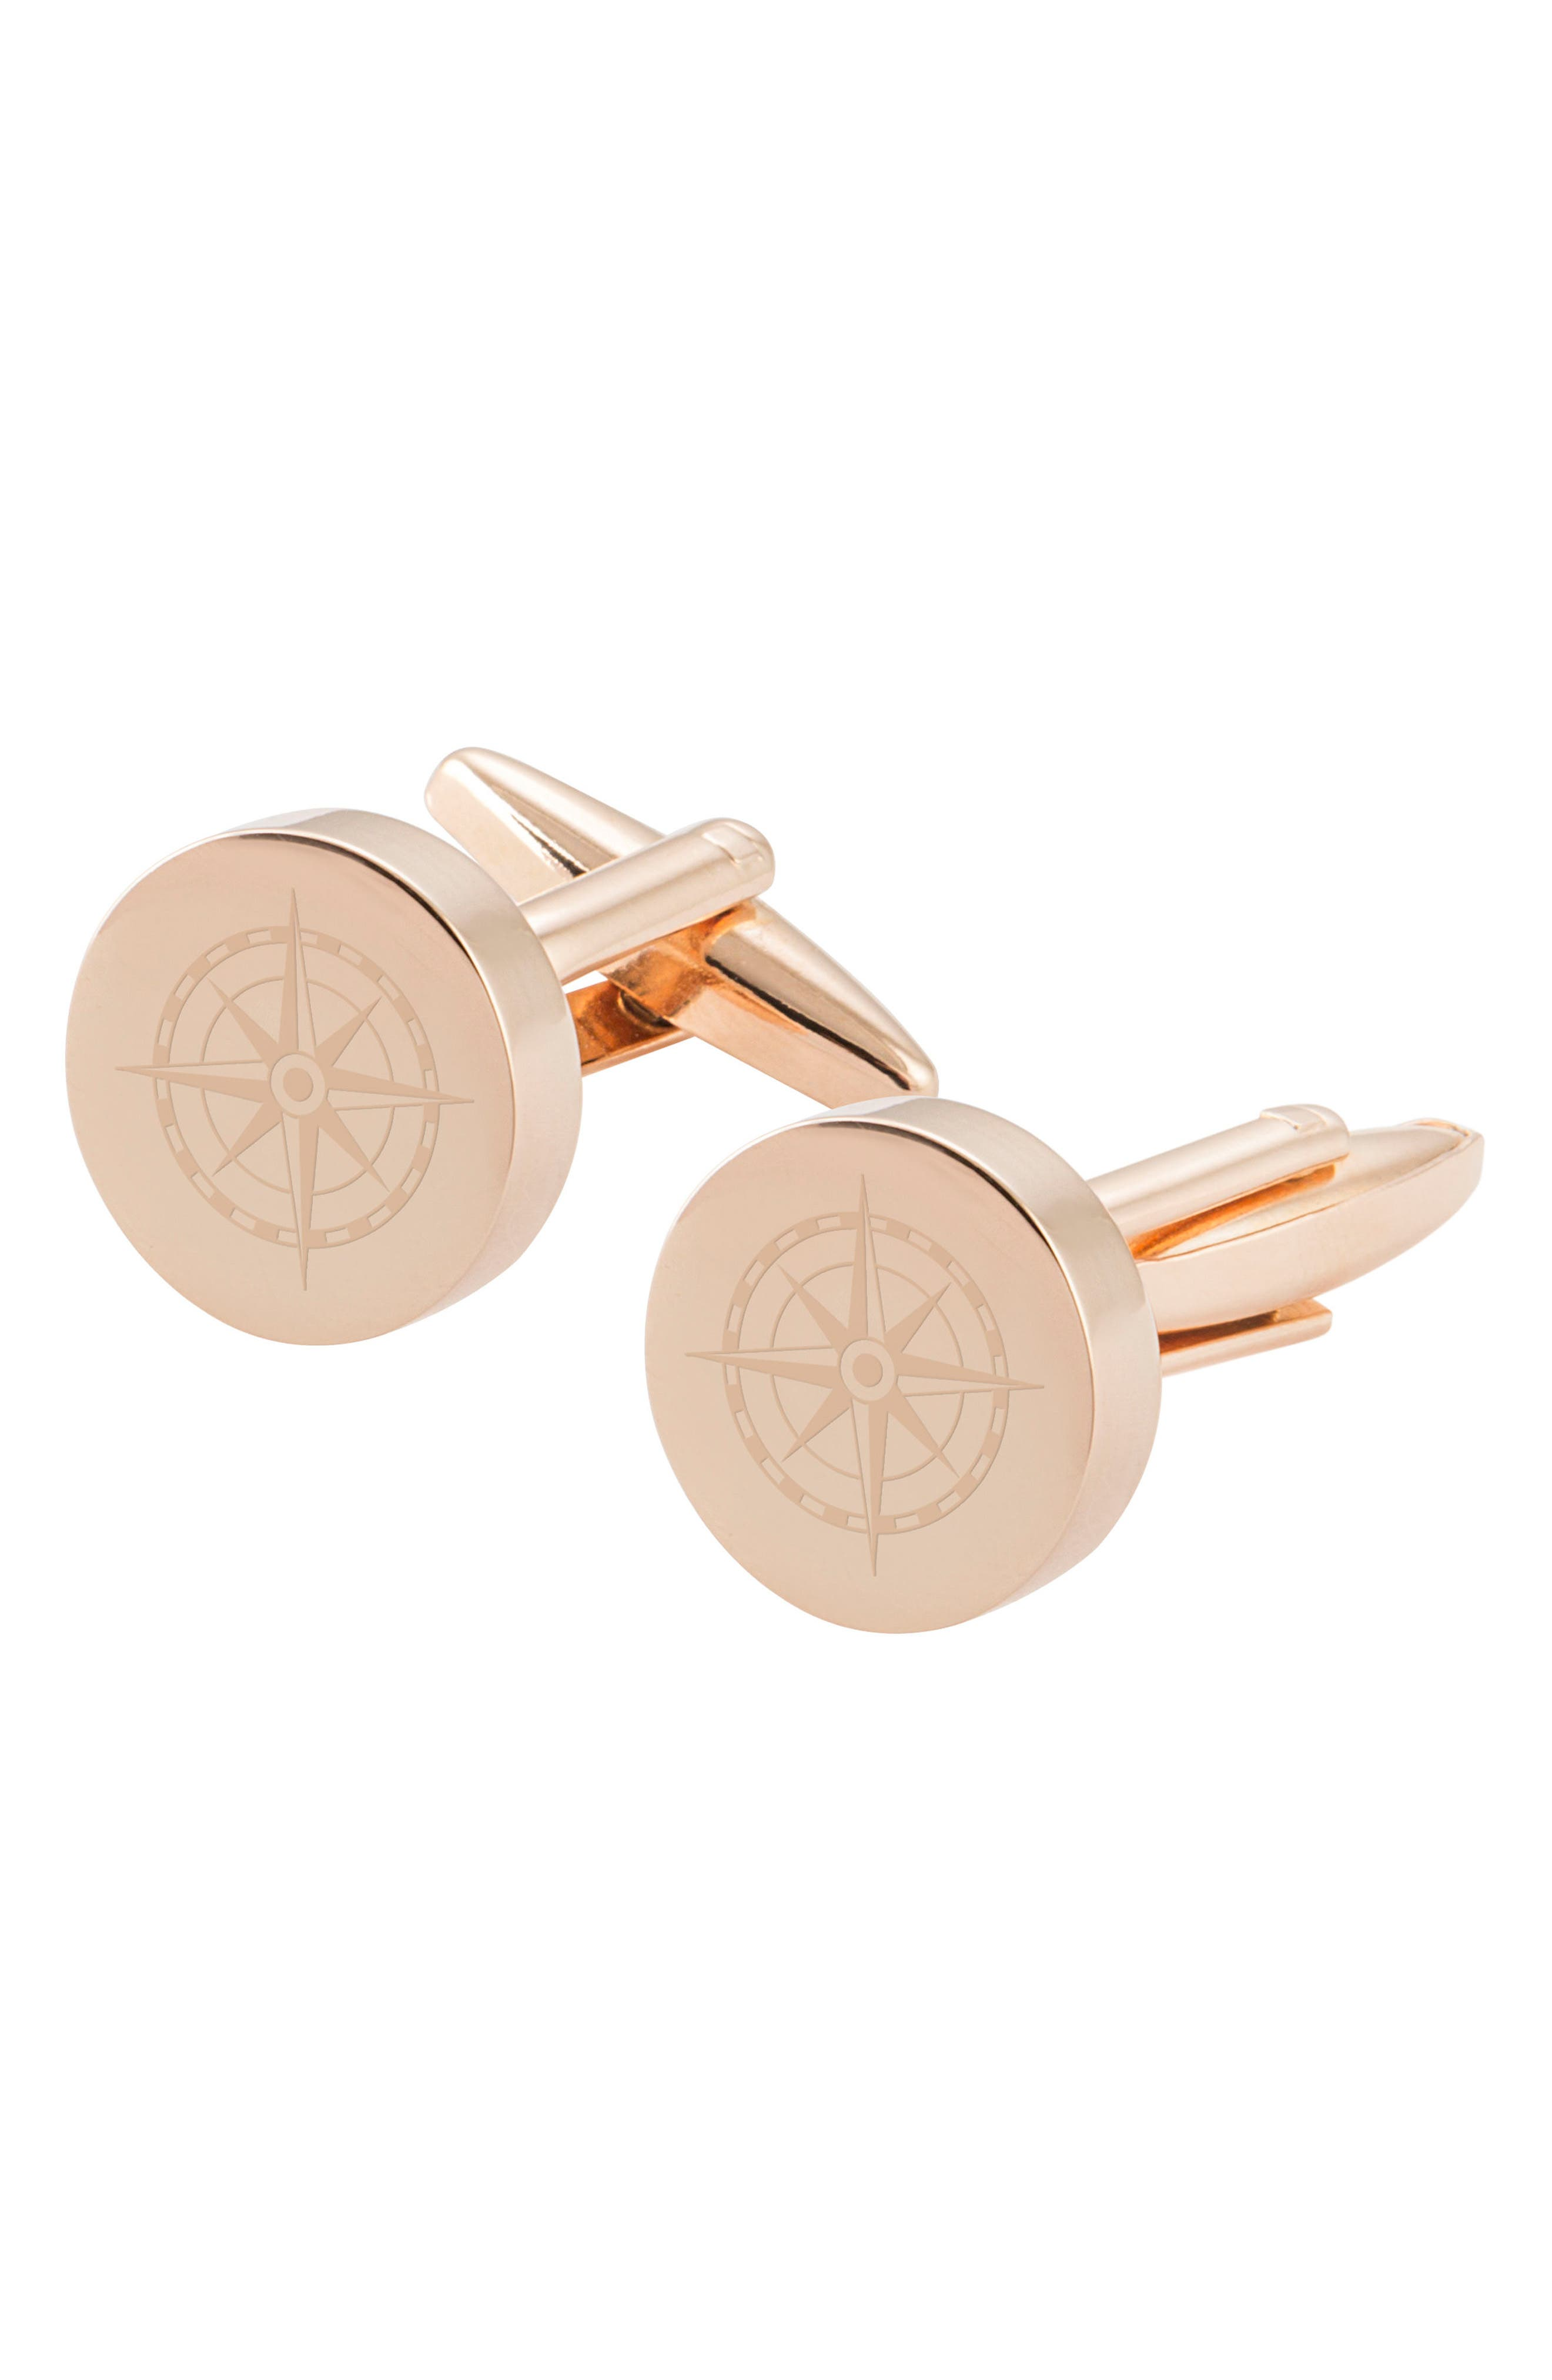 Compass Cuff Links,                         Main,                         color, Rose Gold